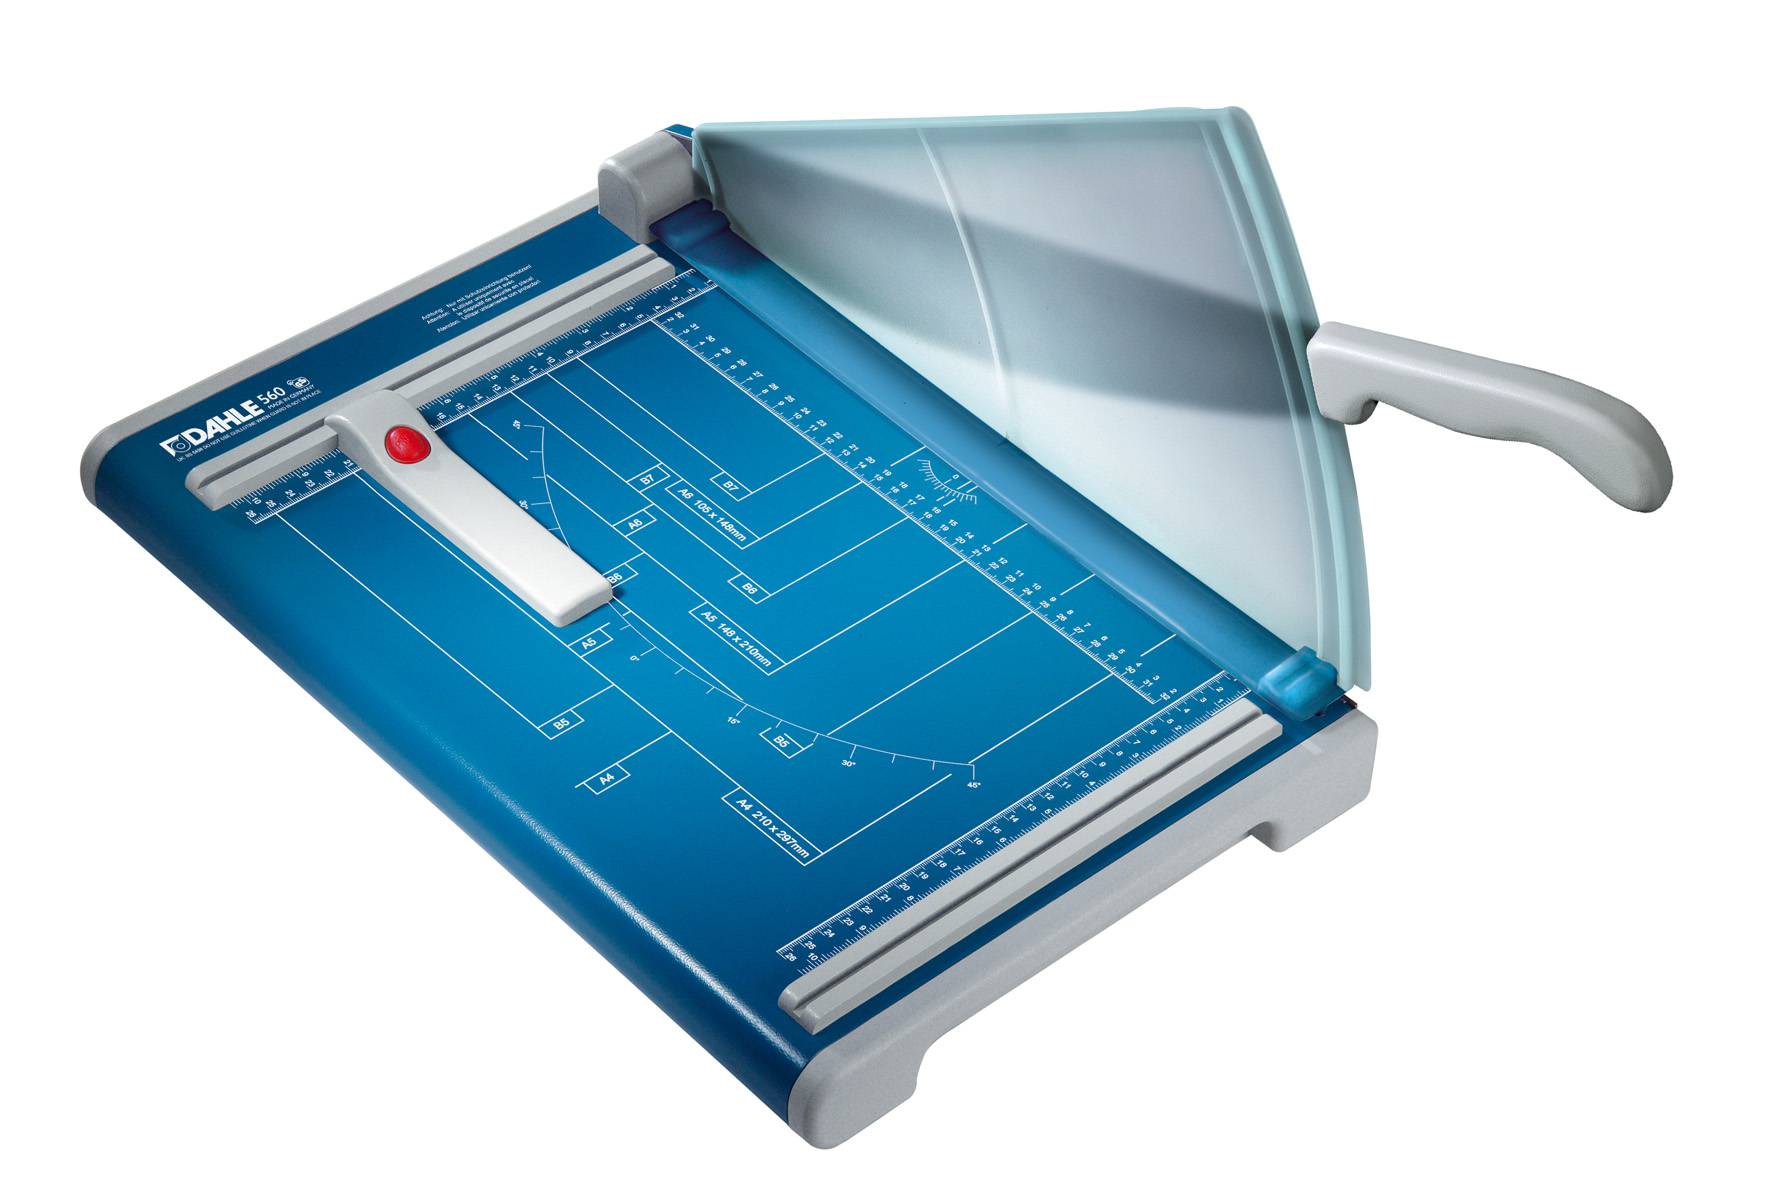 Sharpening Paper Cutter Image 1